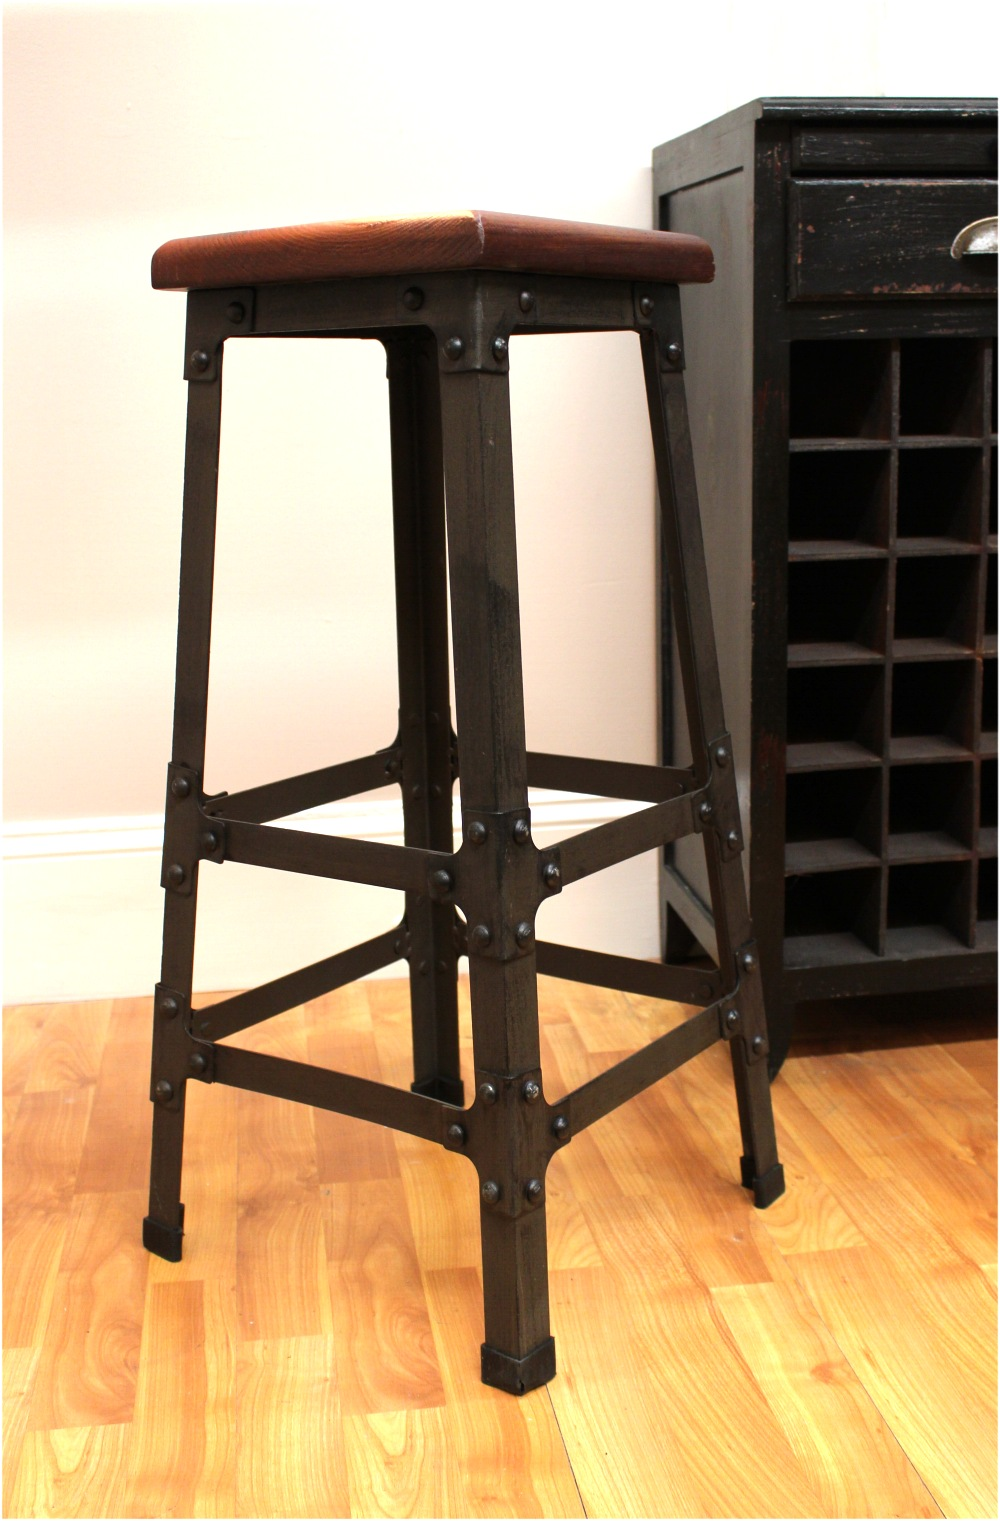 Bar Stool with Wooden Seat amp Riveted Iron Legs for Home  : 4f2ca4e6 b7a5 5701 8c2c bd2b2de1d9e0 from thekingsbay.com size 1000 x 1521 jpeg 274kB